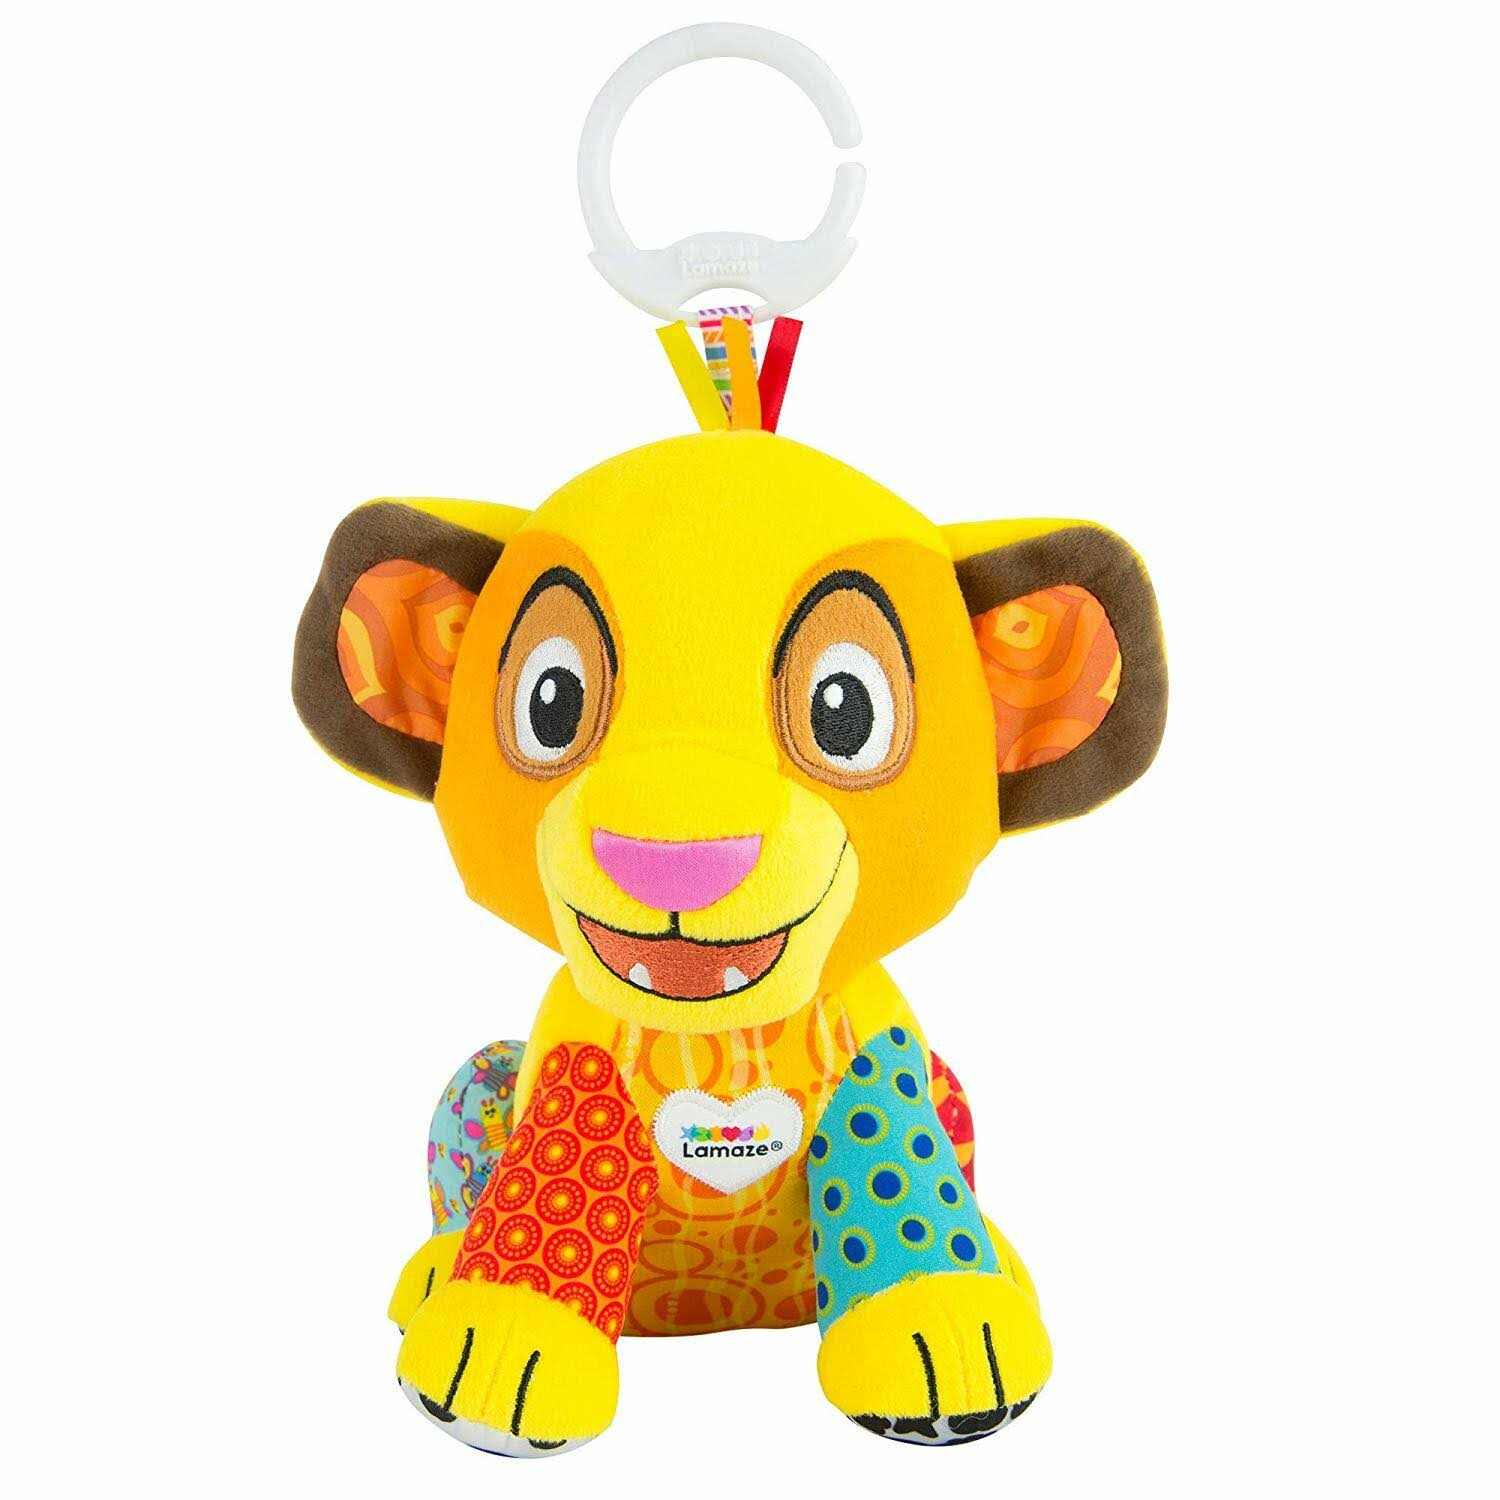 Simba Clip & Go Plush for Baby by Lamaze The Lion King - Official shopDisney